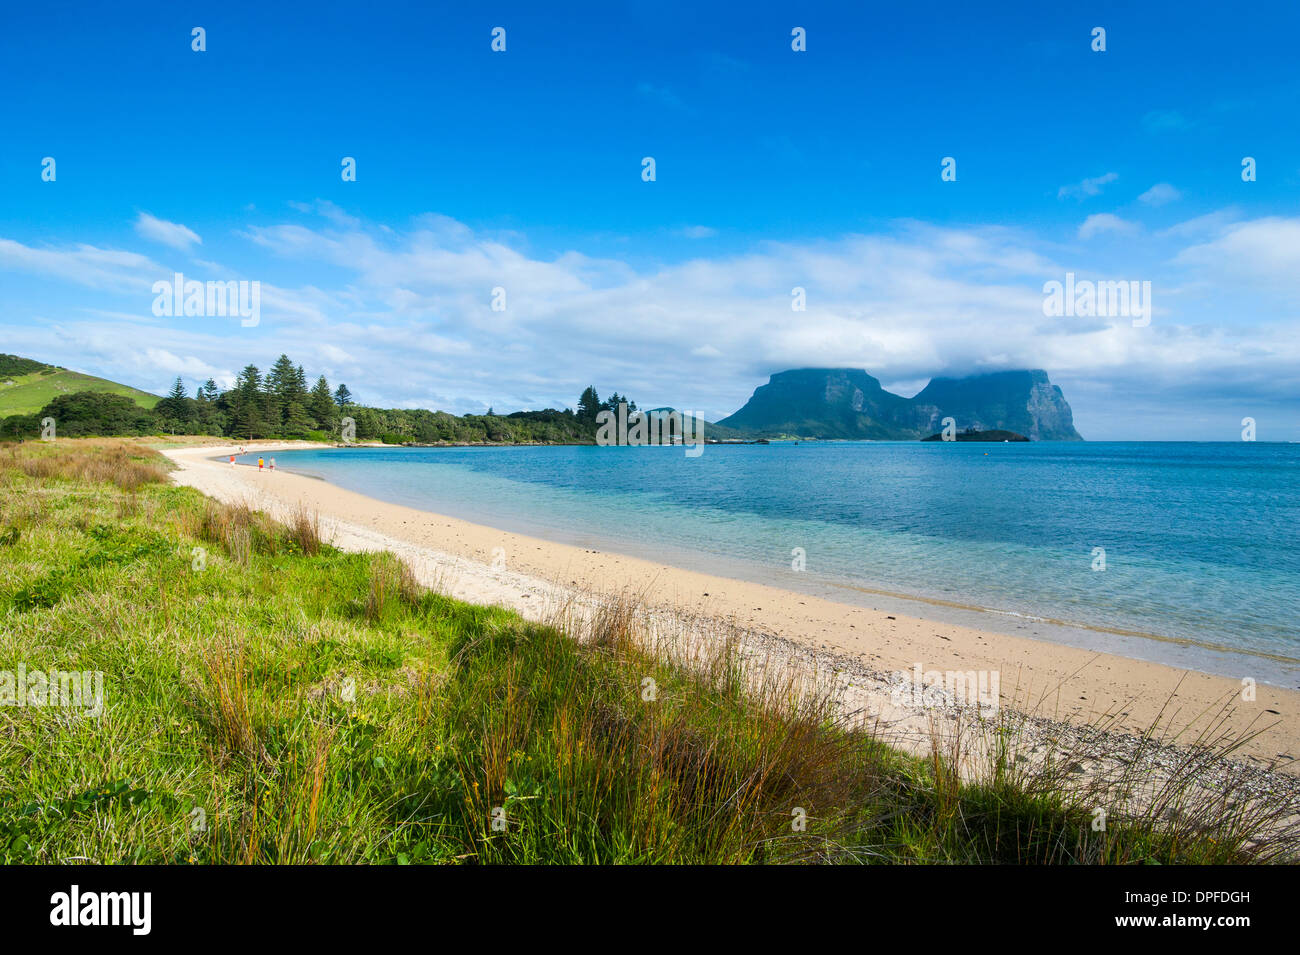 Deserted beach with Mount Lidgbird and Mount Gower in the background, Lord Howe Island, UNESCO Site, Australia, Tasman Sea - Stock Image